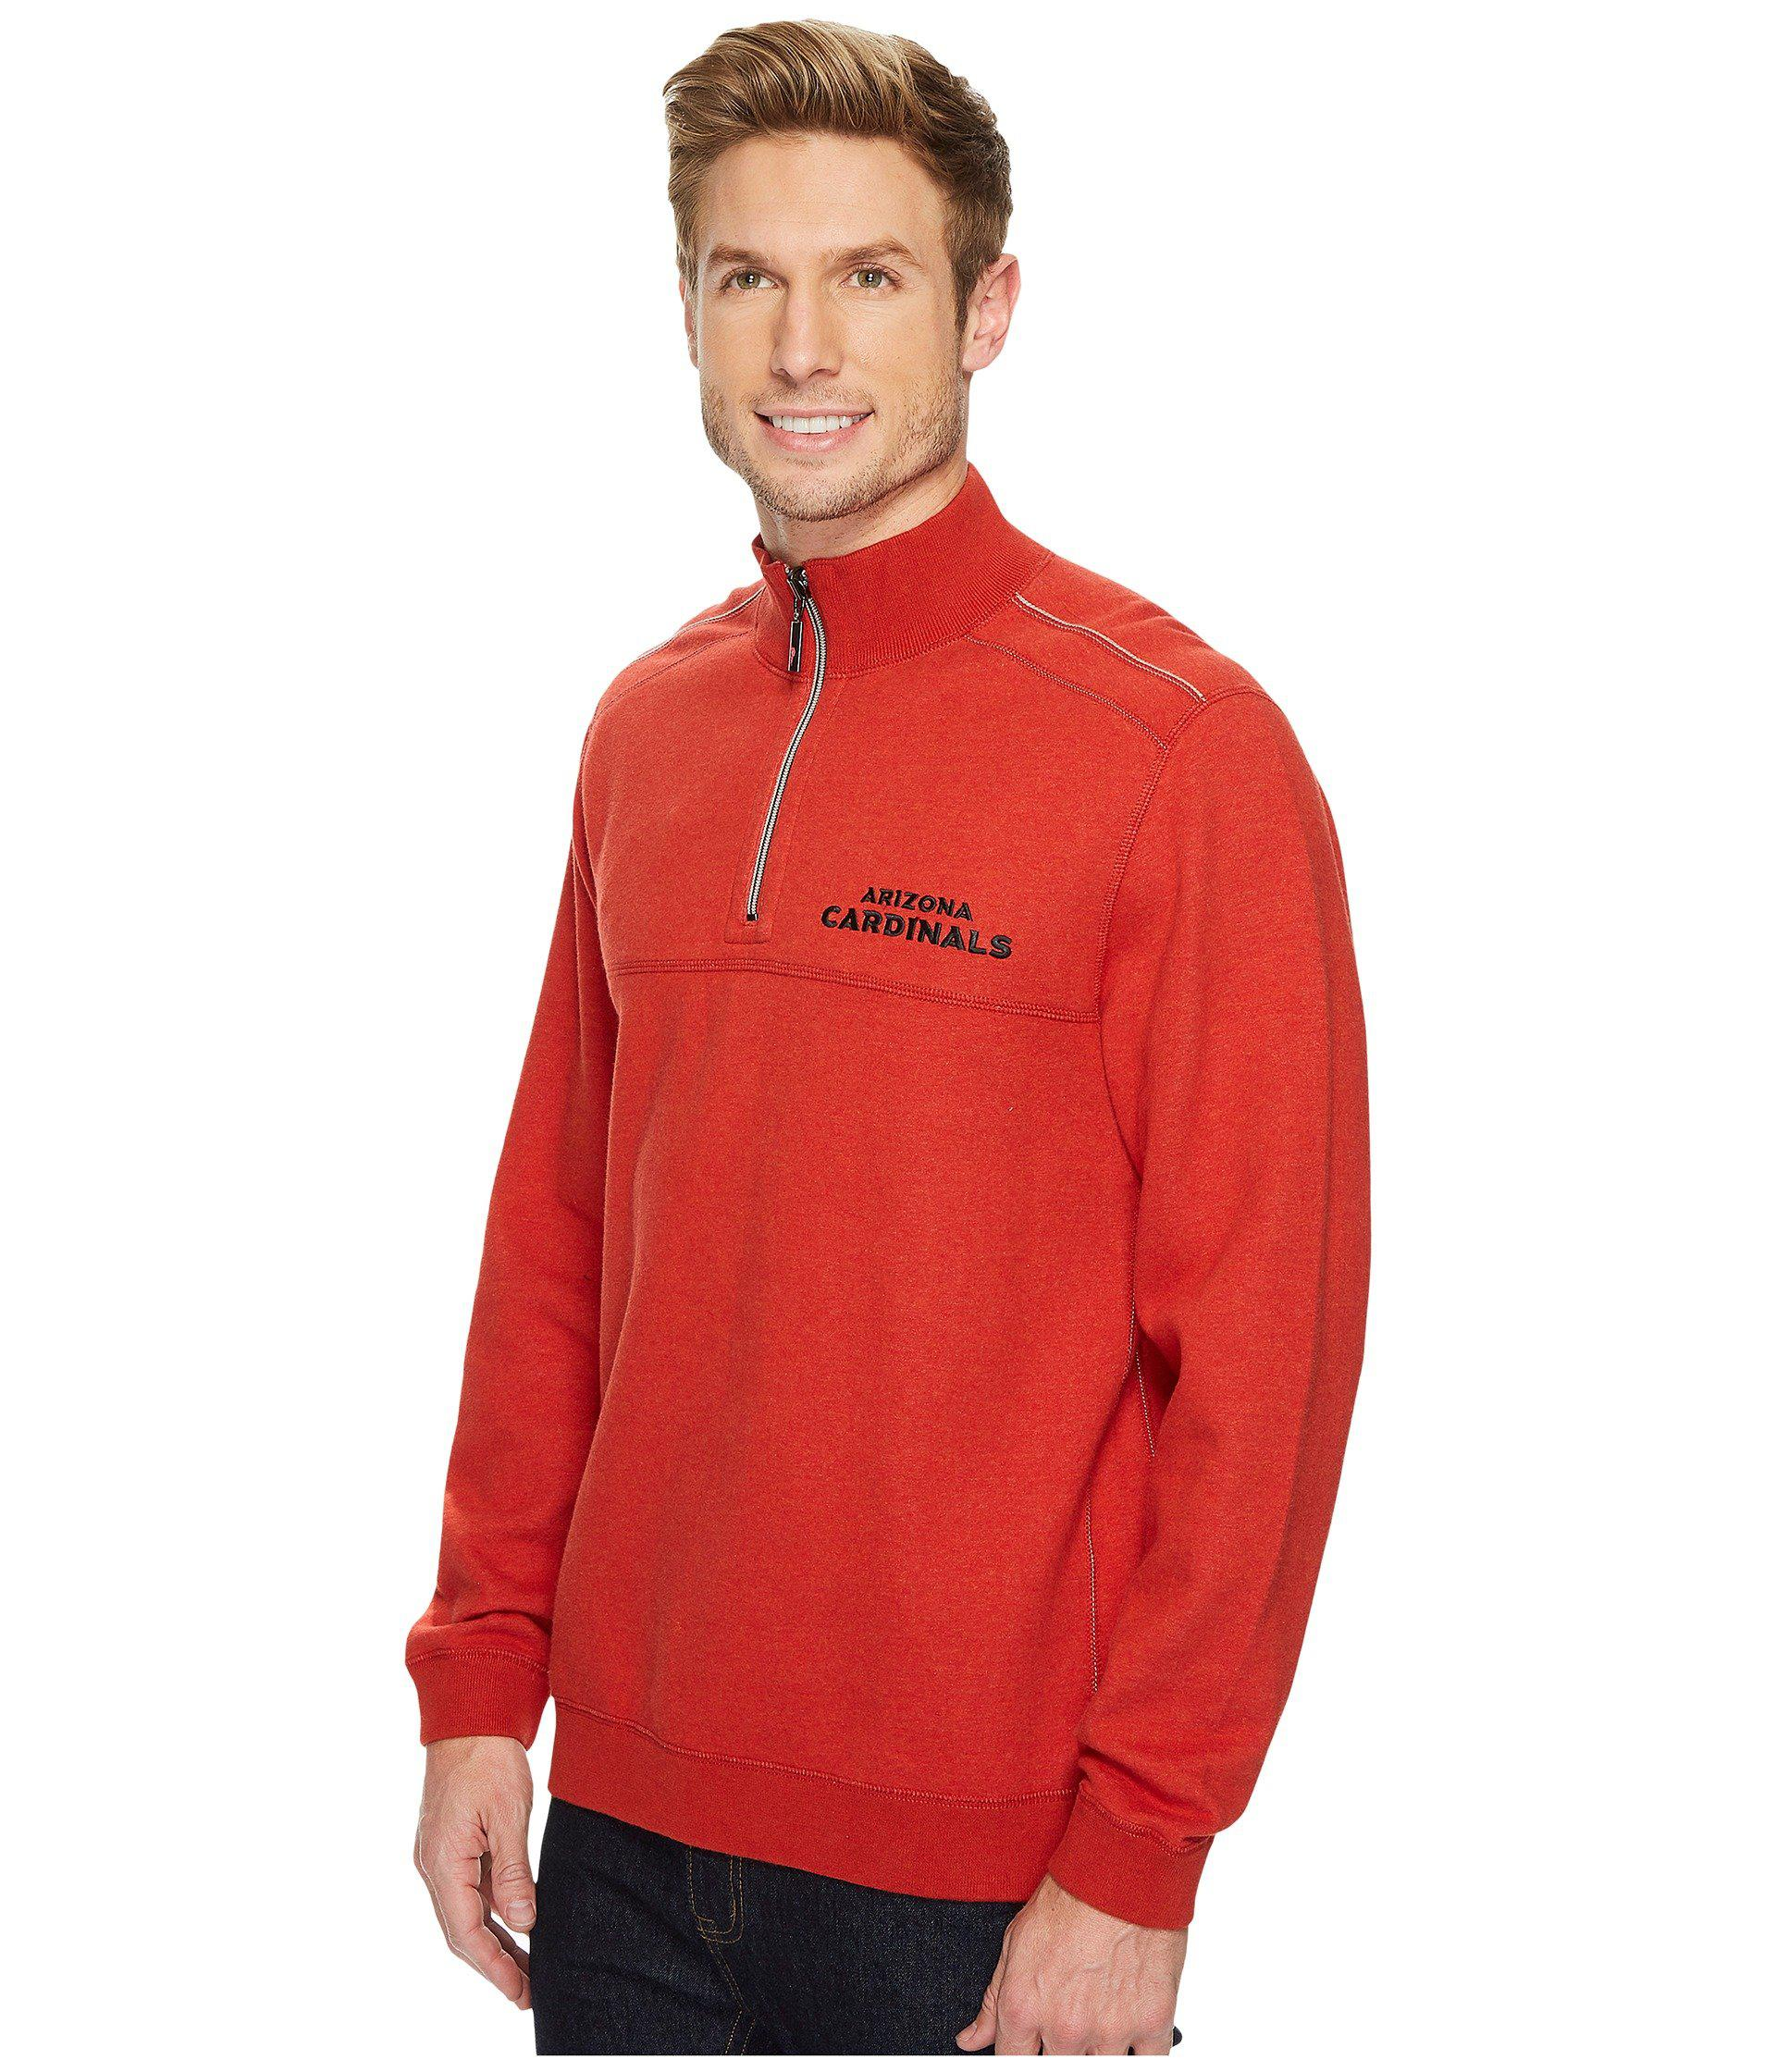 Lyst - Tommy Bahama Reversible Nfl Flip Drive 1 2 Zip Pullover in Red for  Men - Save 79% b8d4eed68